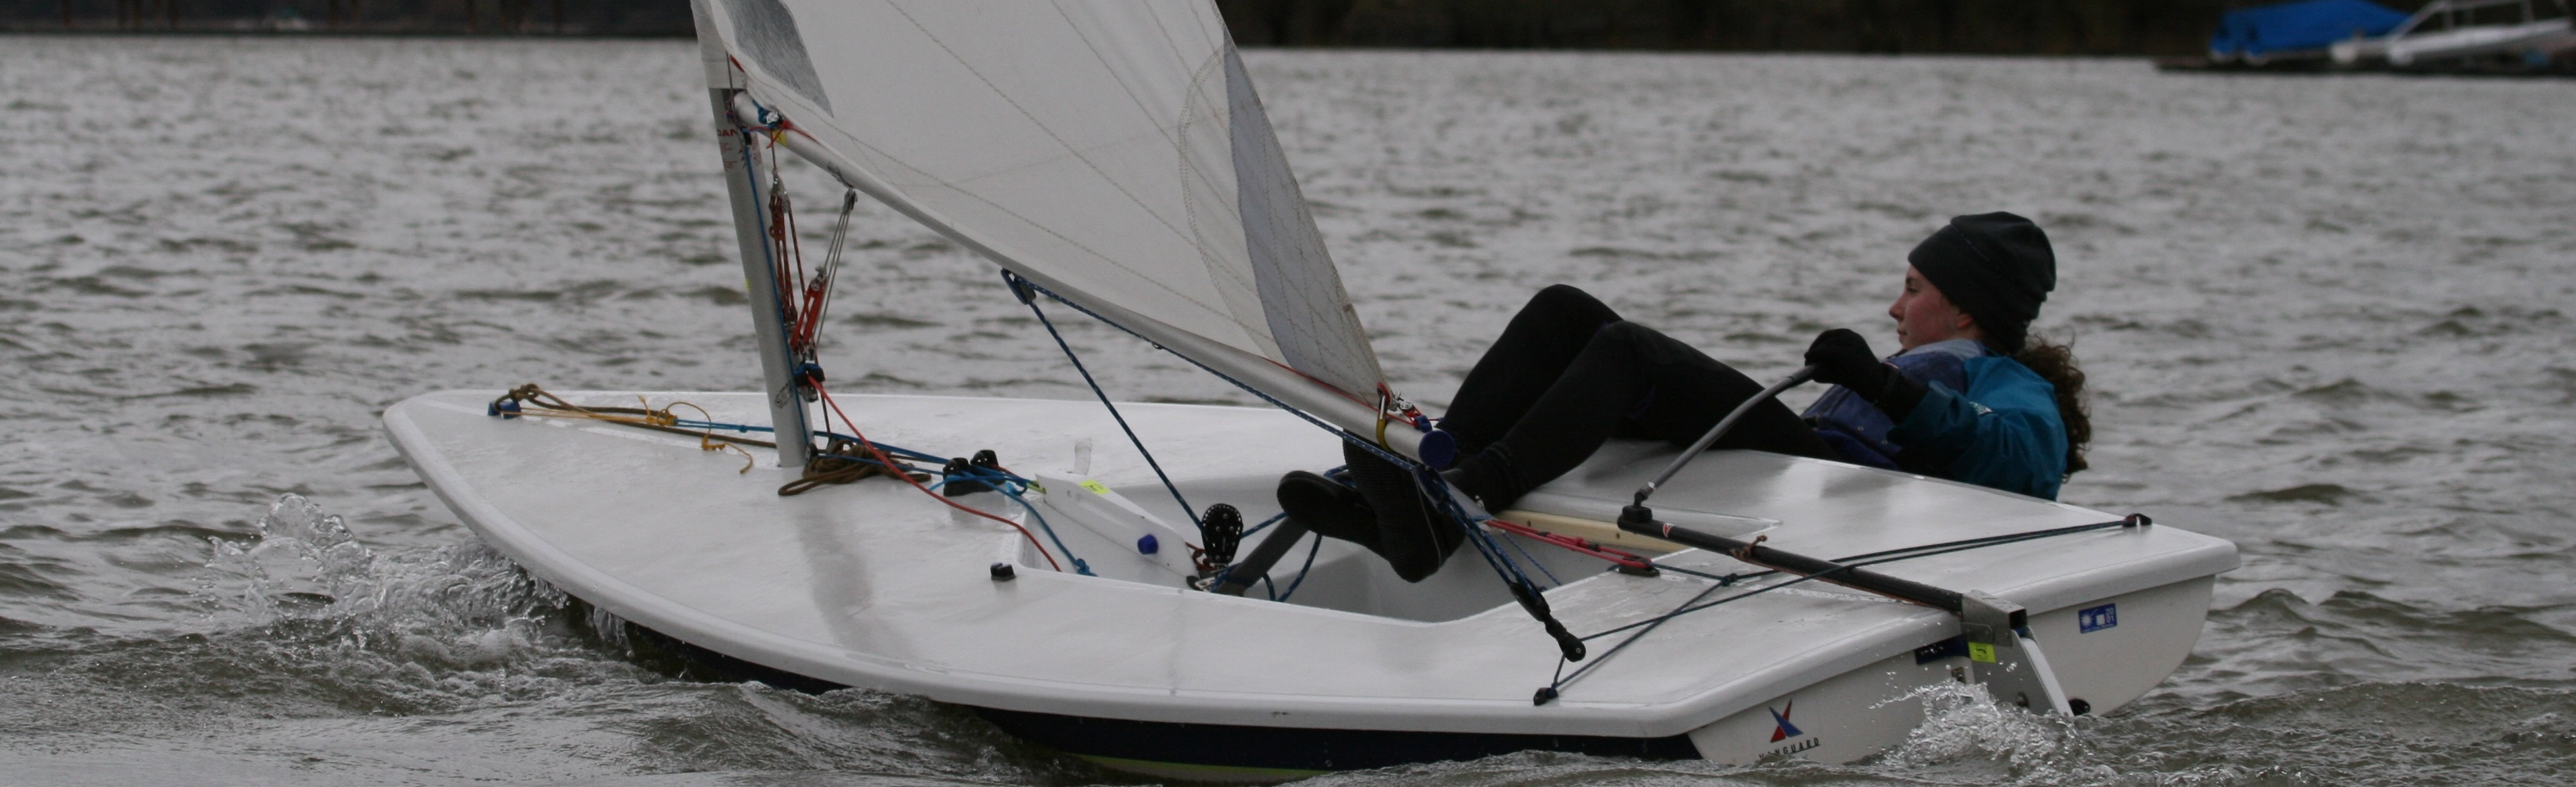 Laser Sailboat Parts, Sails, Upgrades, & Accessories | West